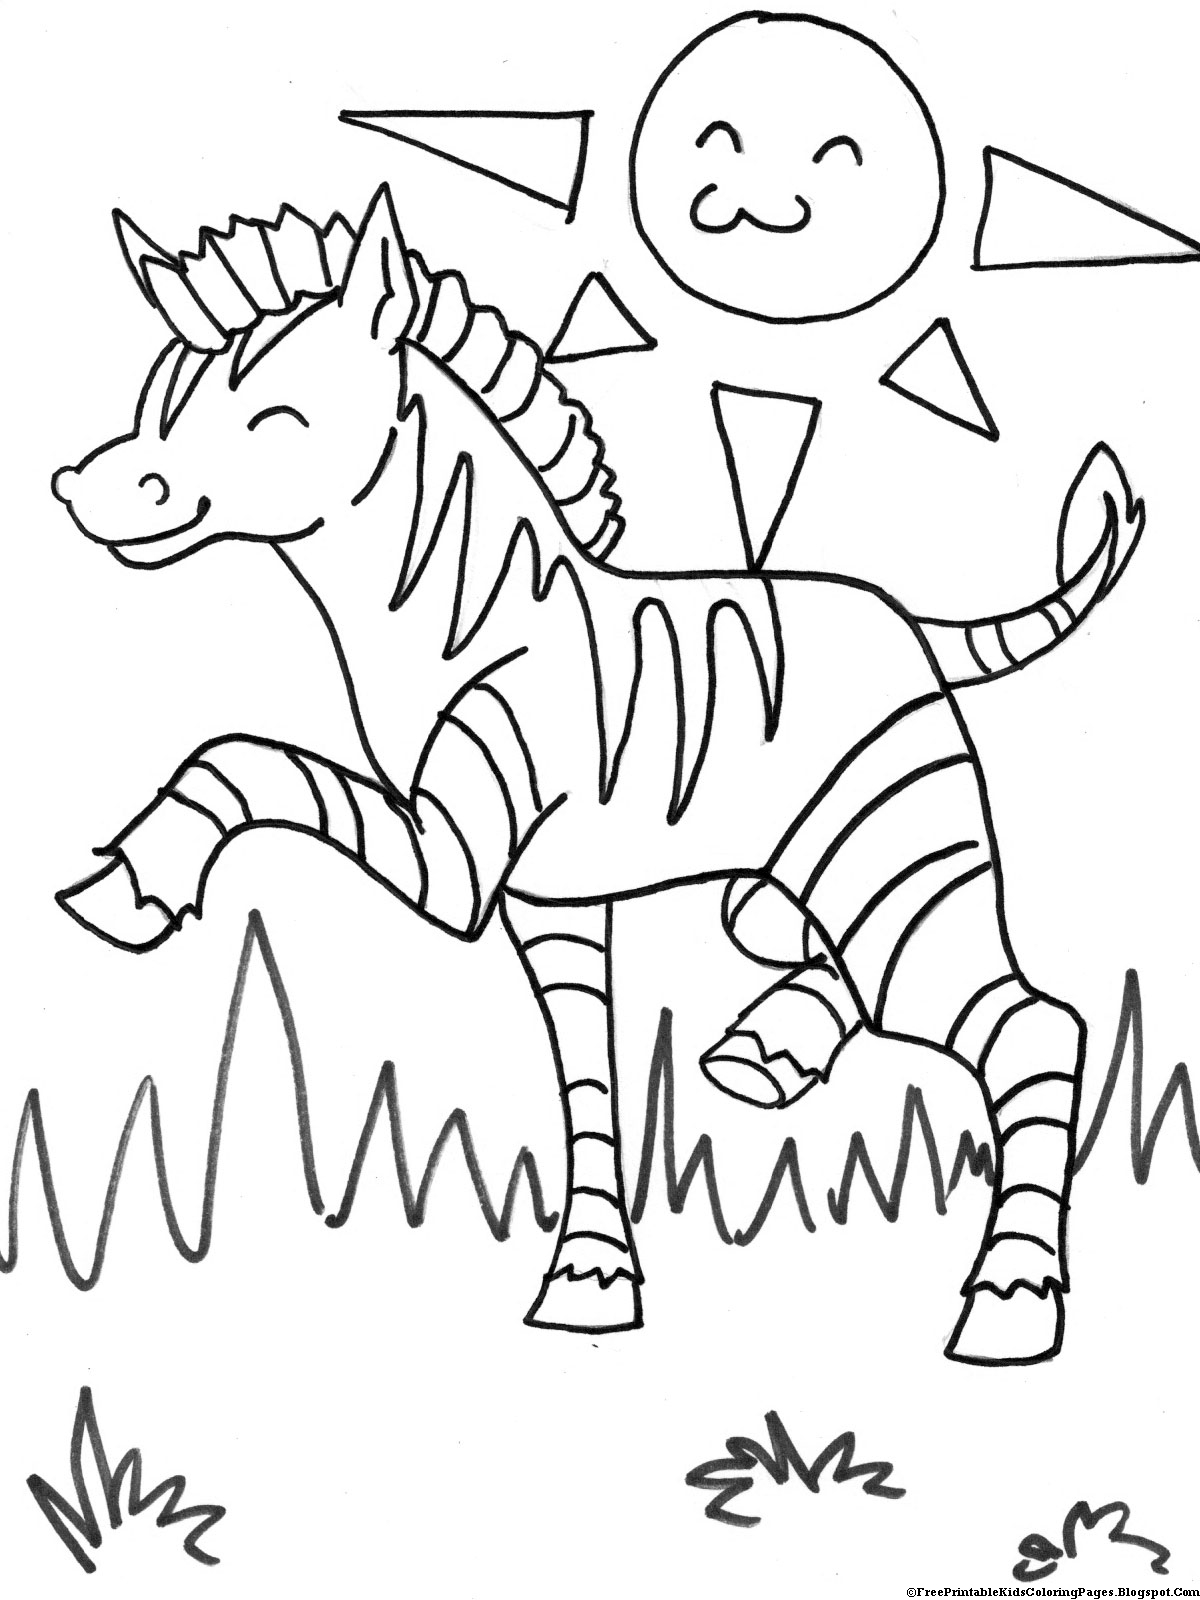 zebra coloring pages without stripes - photo #38